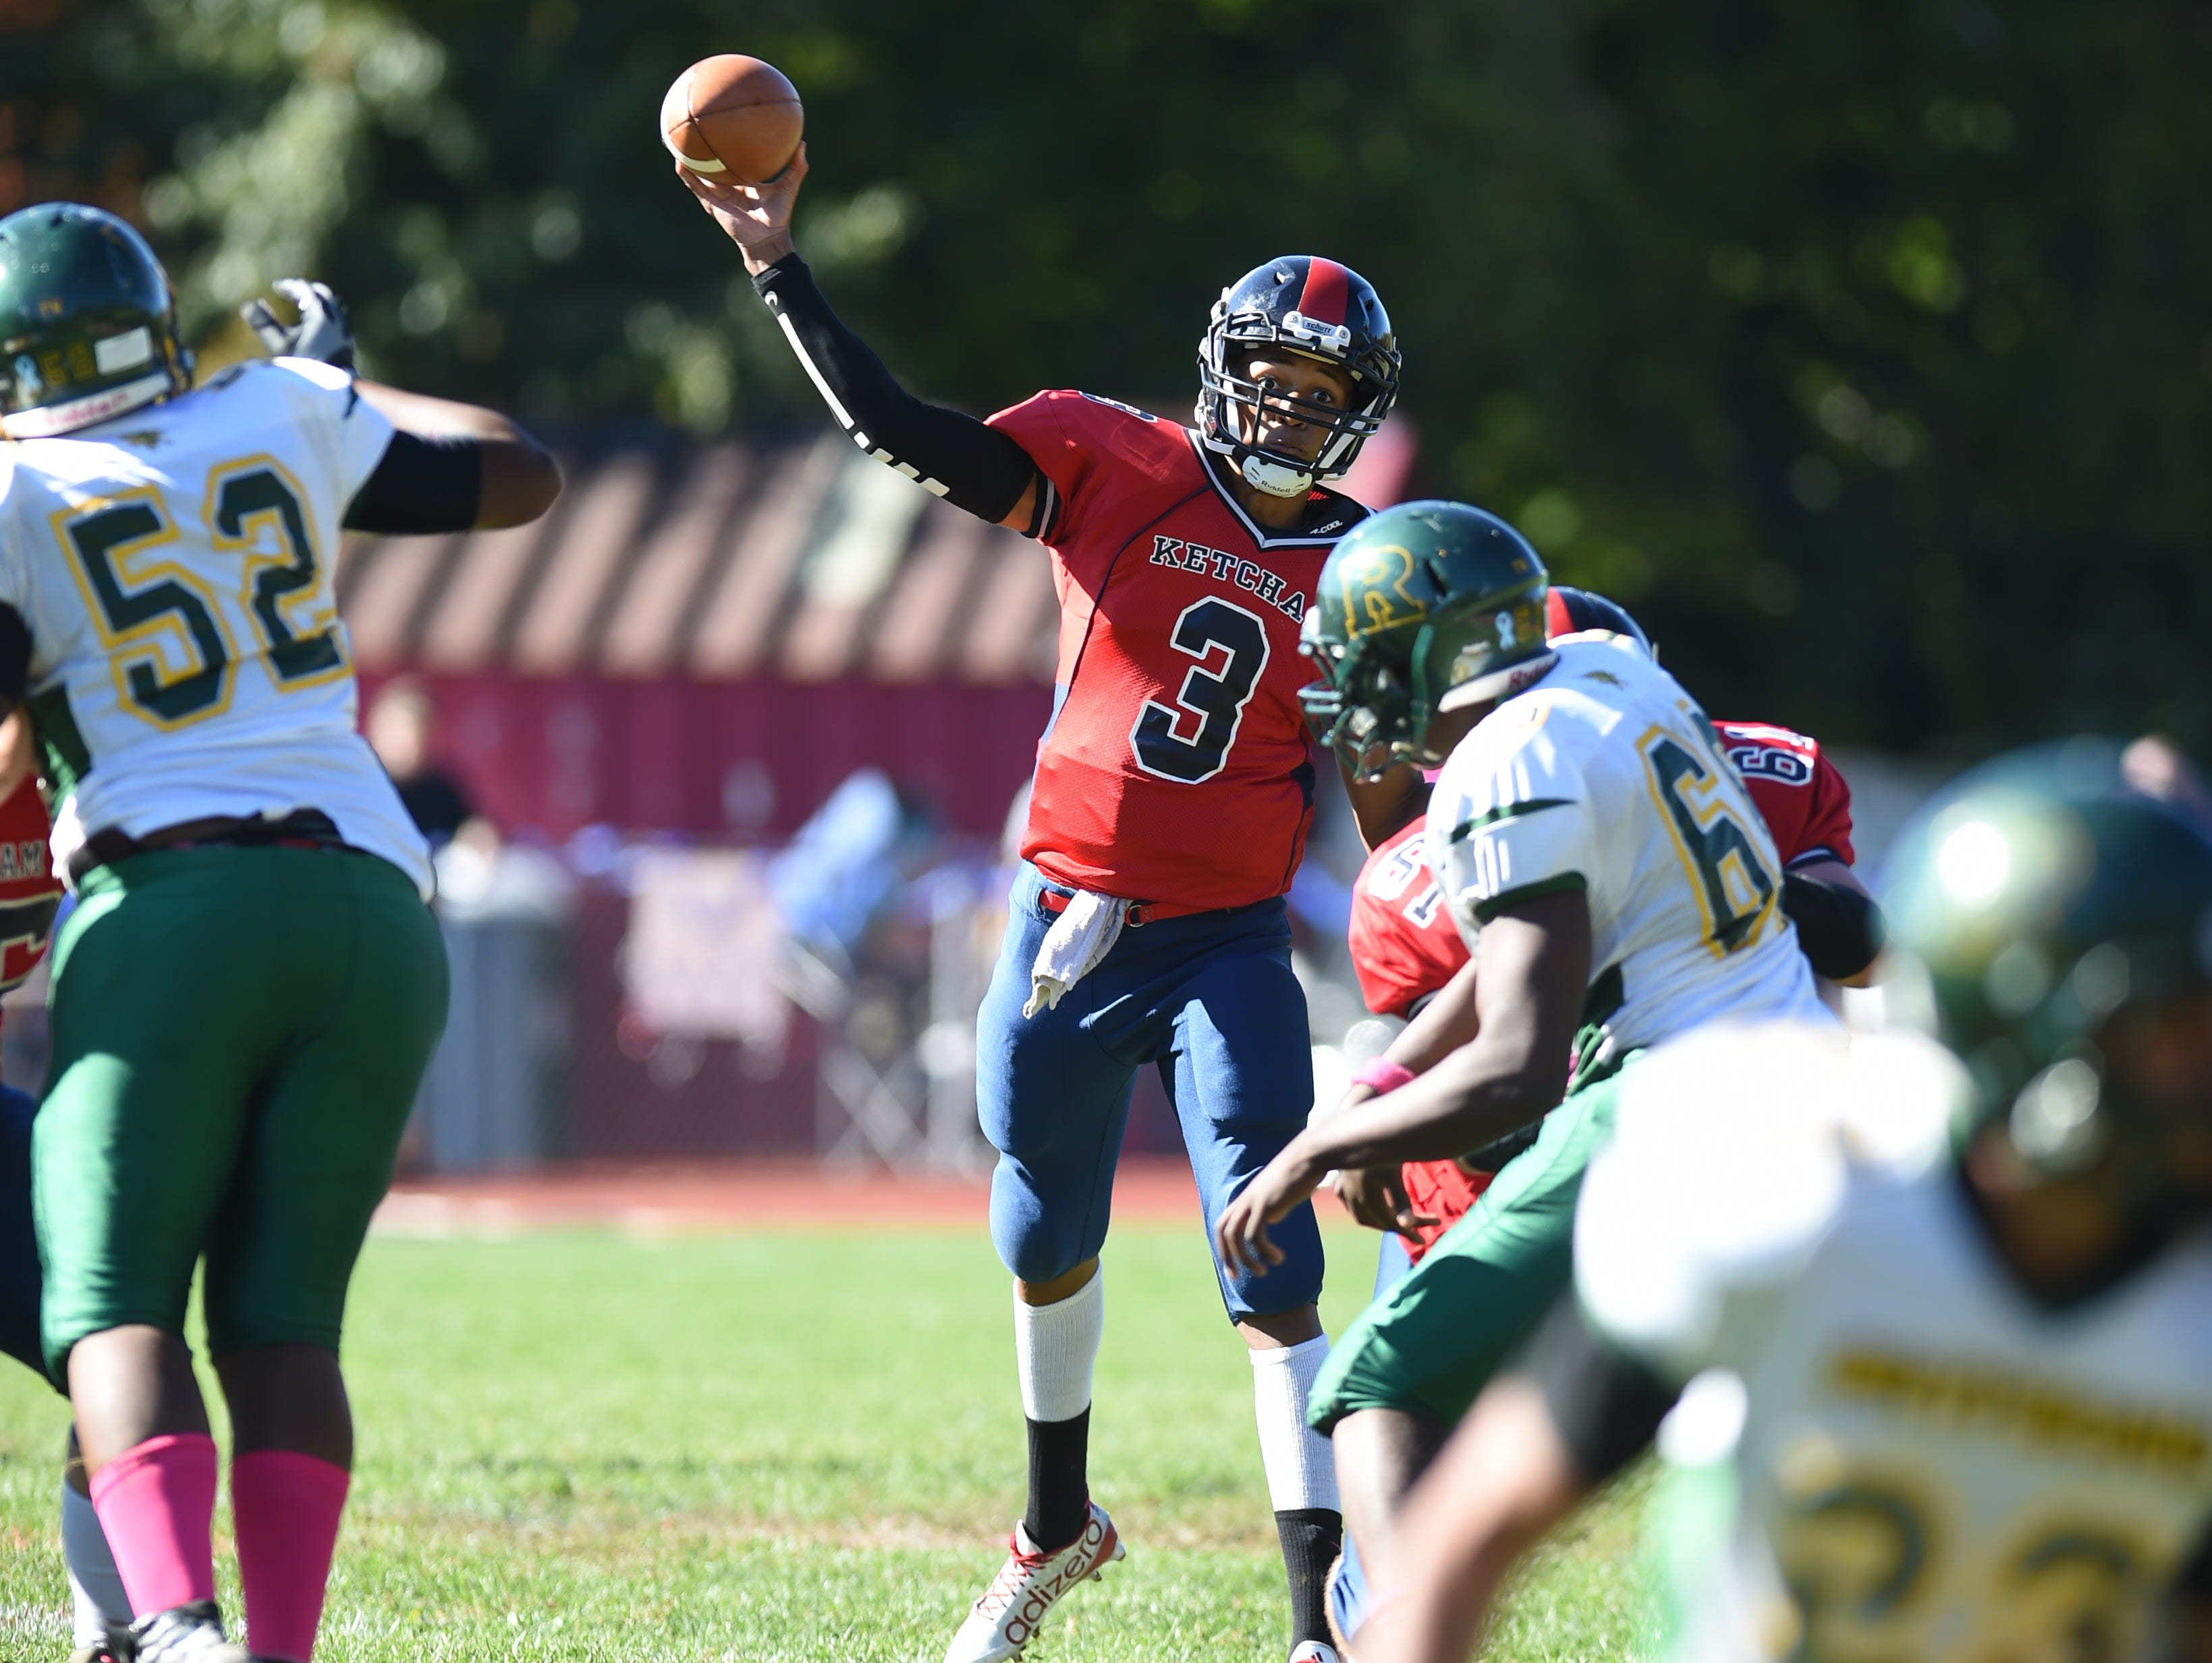 Ketcham's Al Dockery passes the ball during Saturday's game versus Ramapo in Wappingers Falls.